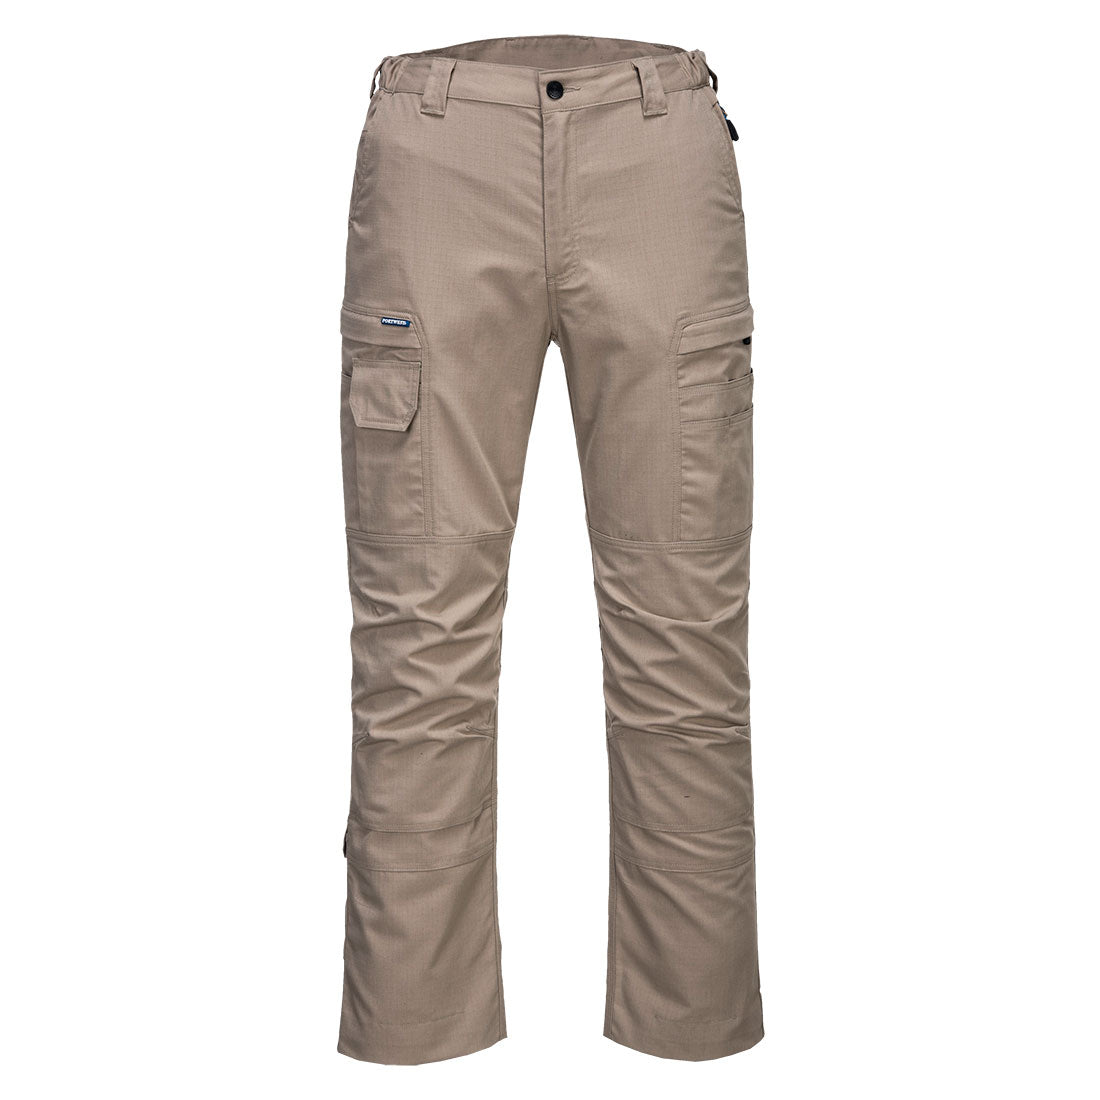 Portwest KX3 Ripstop Trousers T802